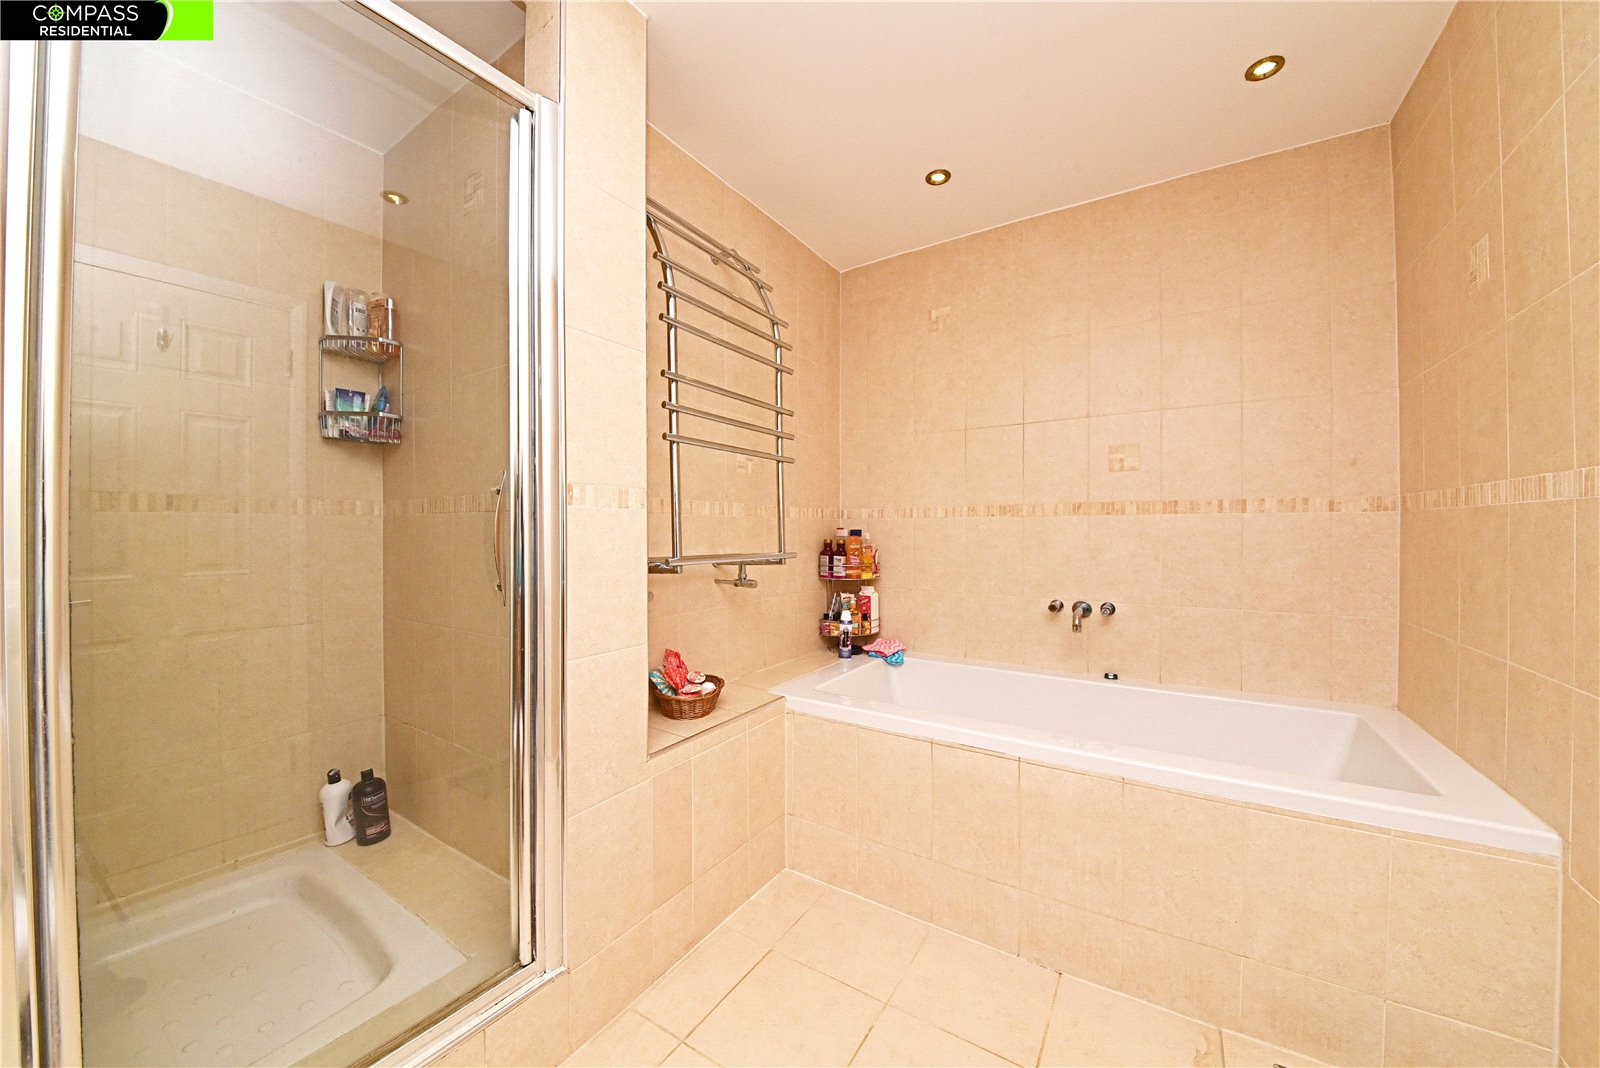 4 bed house for sale in Stanmore, HA7 3AZ 5